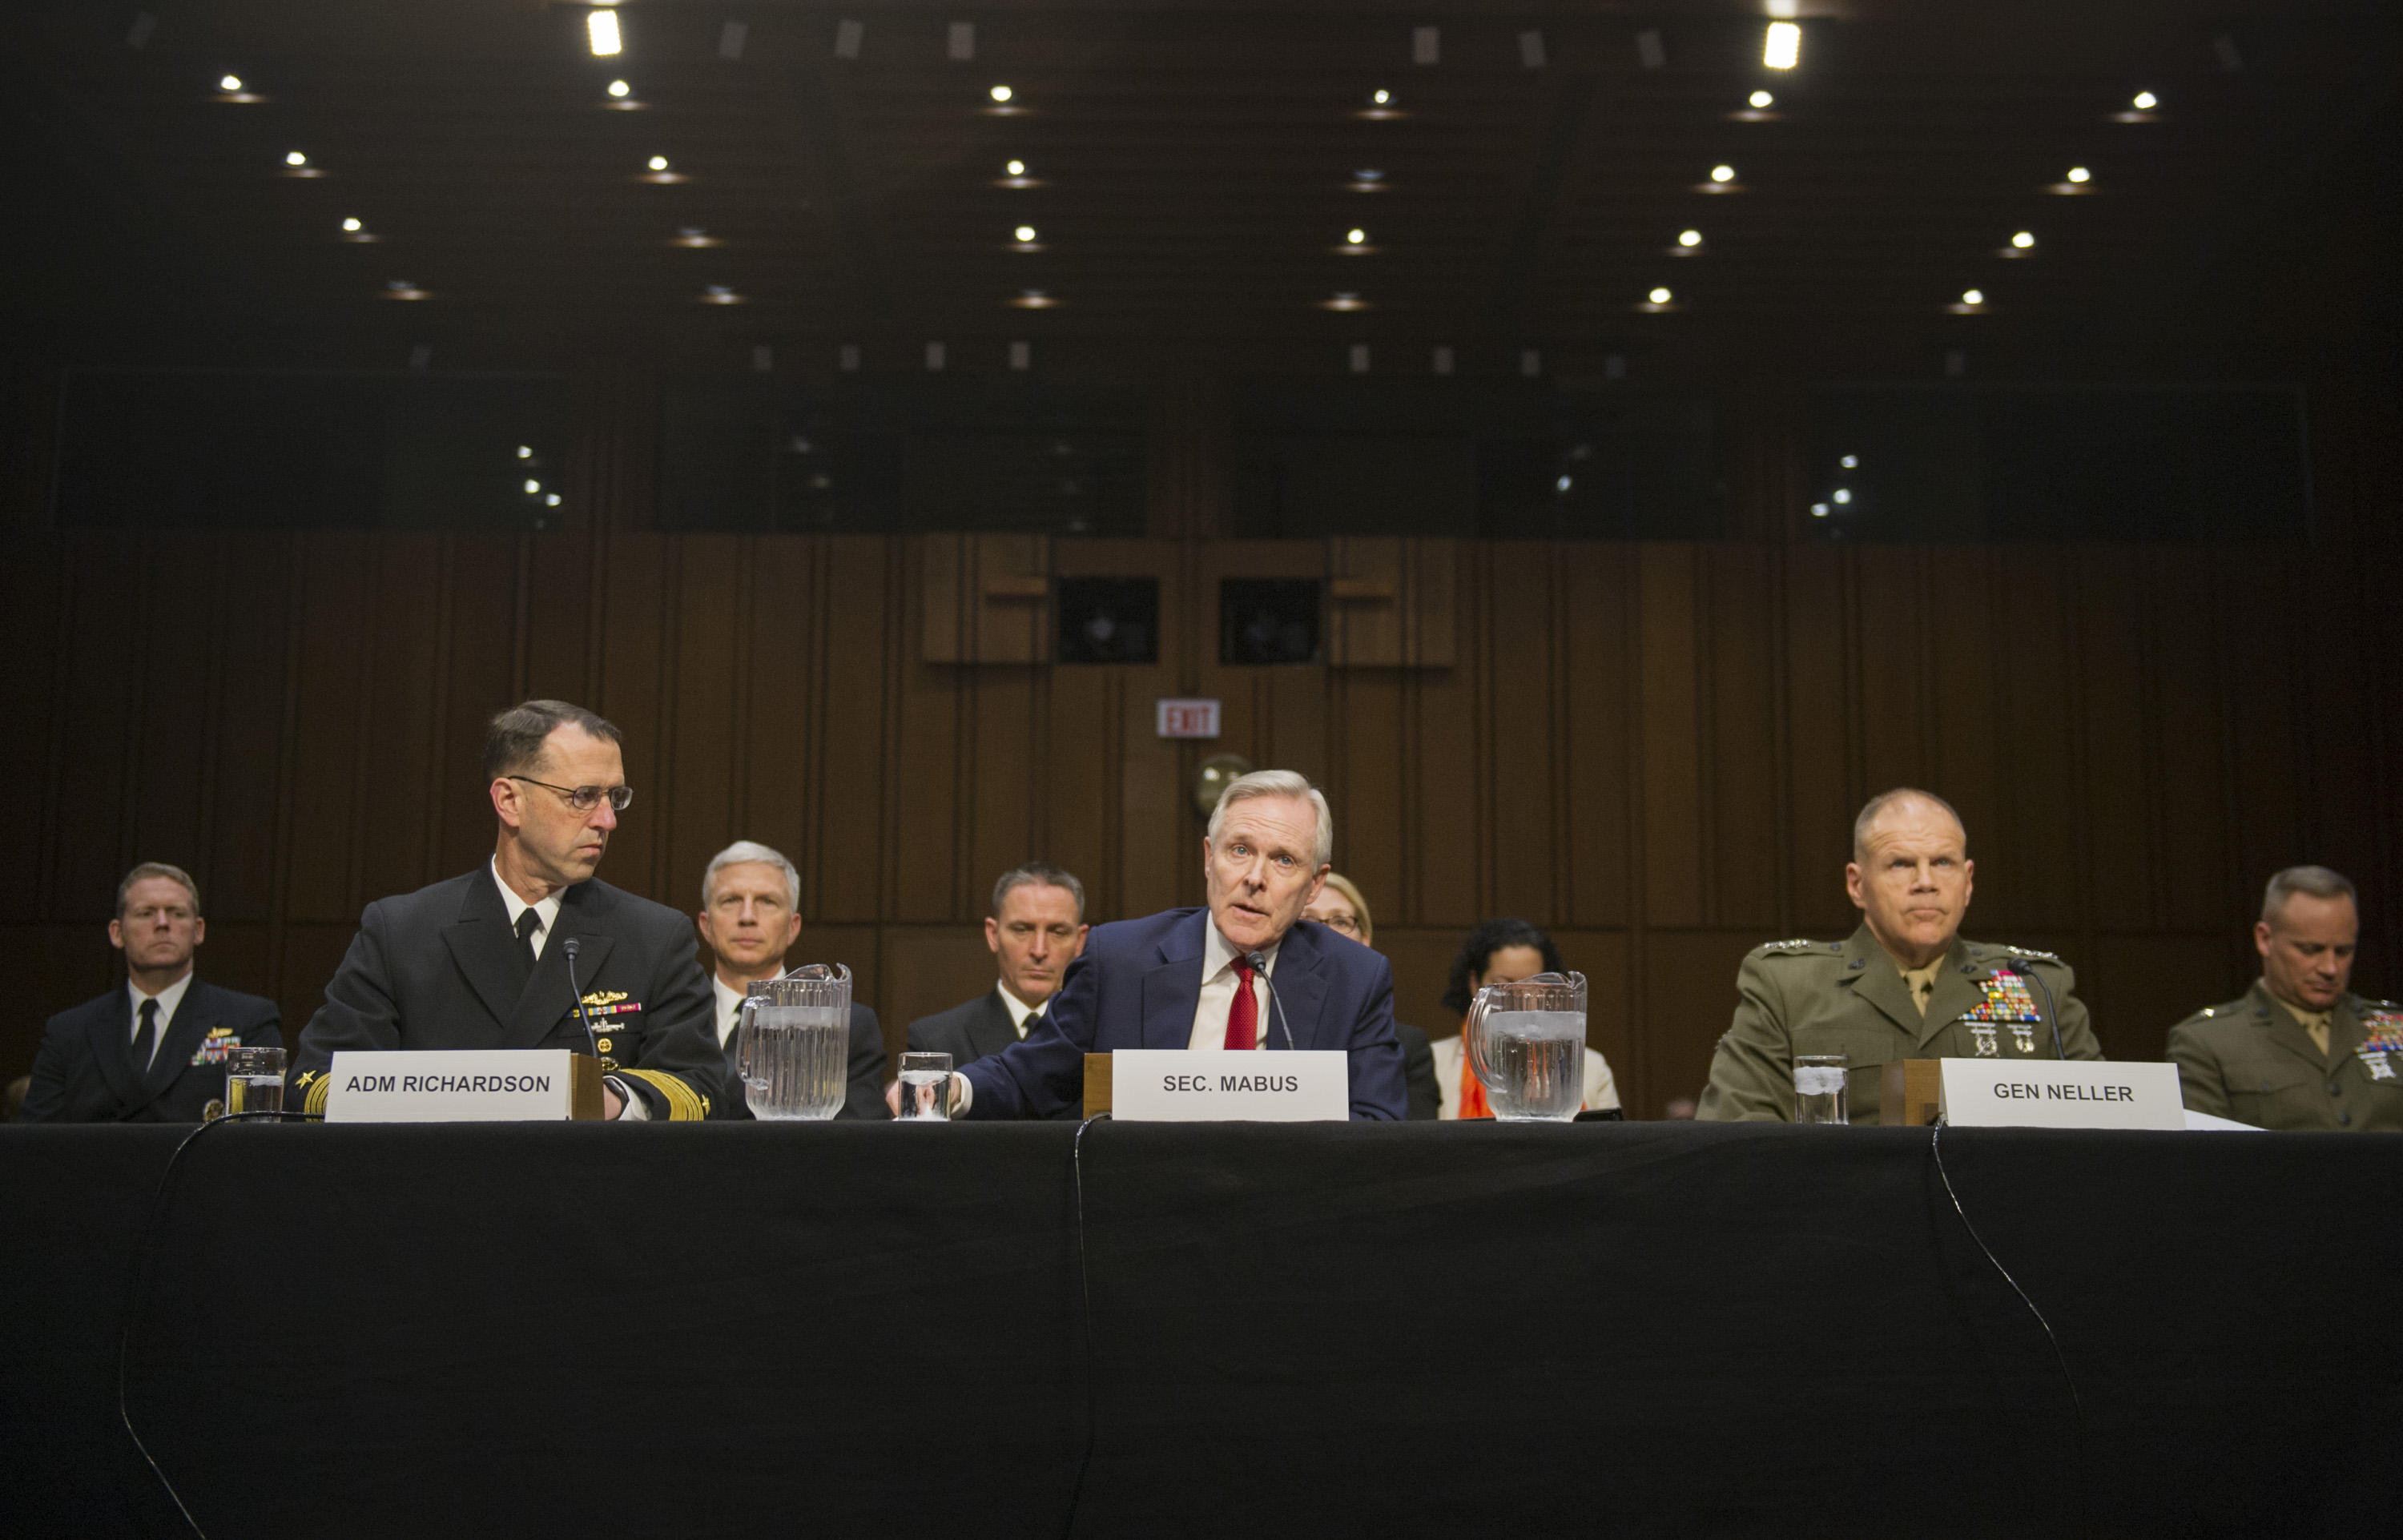 Secretary of the Navy (SECNAV) Ray Mabus testifies before the Senate Armed Services Committee on the Department of Navy's fiscal year 2017 budget and posture. US Navy Photo